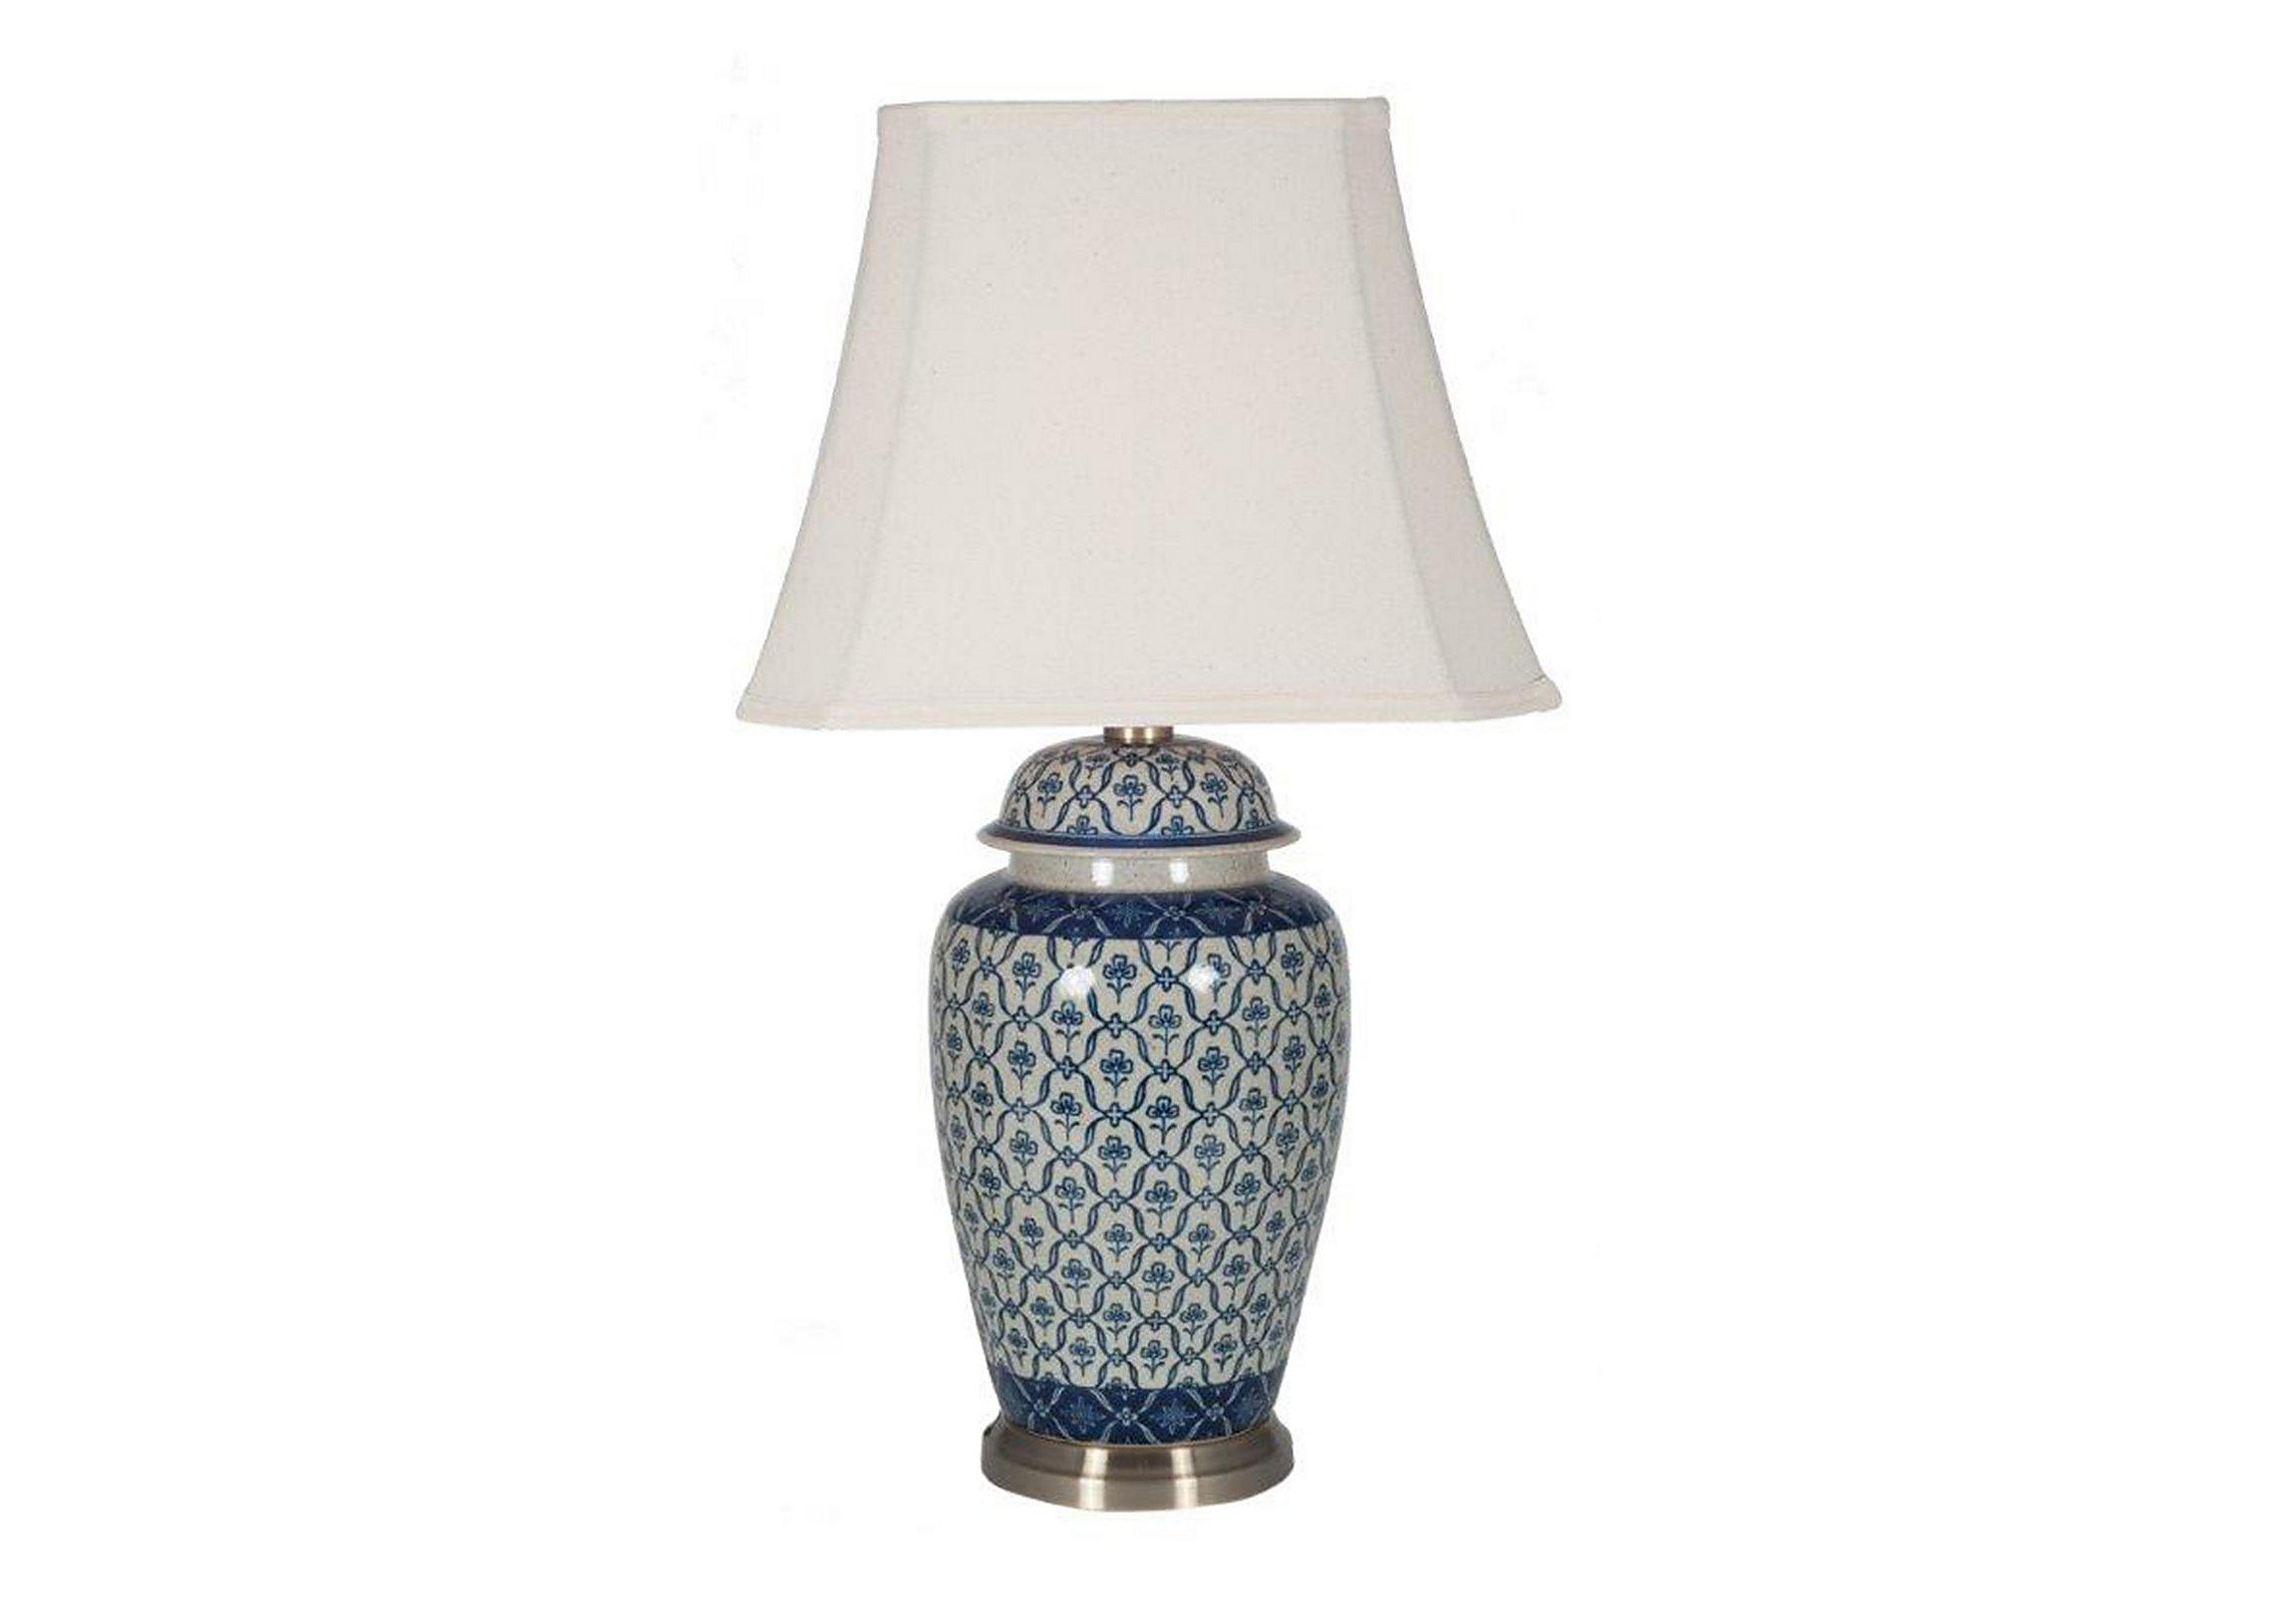 Porcelain ginger jar table lamp furniture village porcelain ginger jar table lamp loading images geotapseo Choice Image